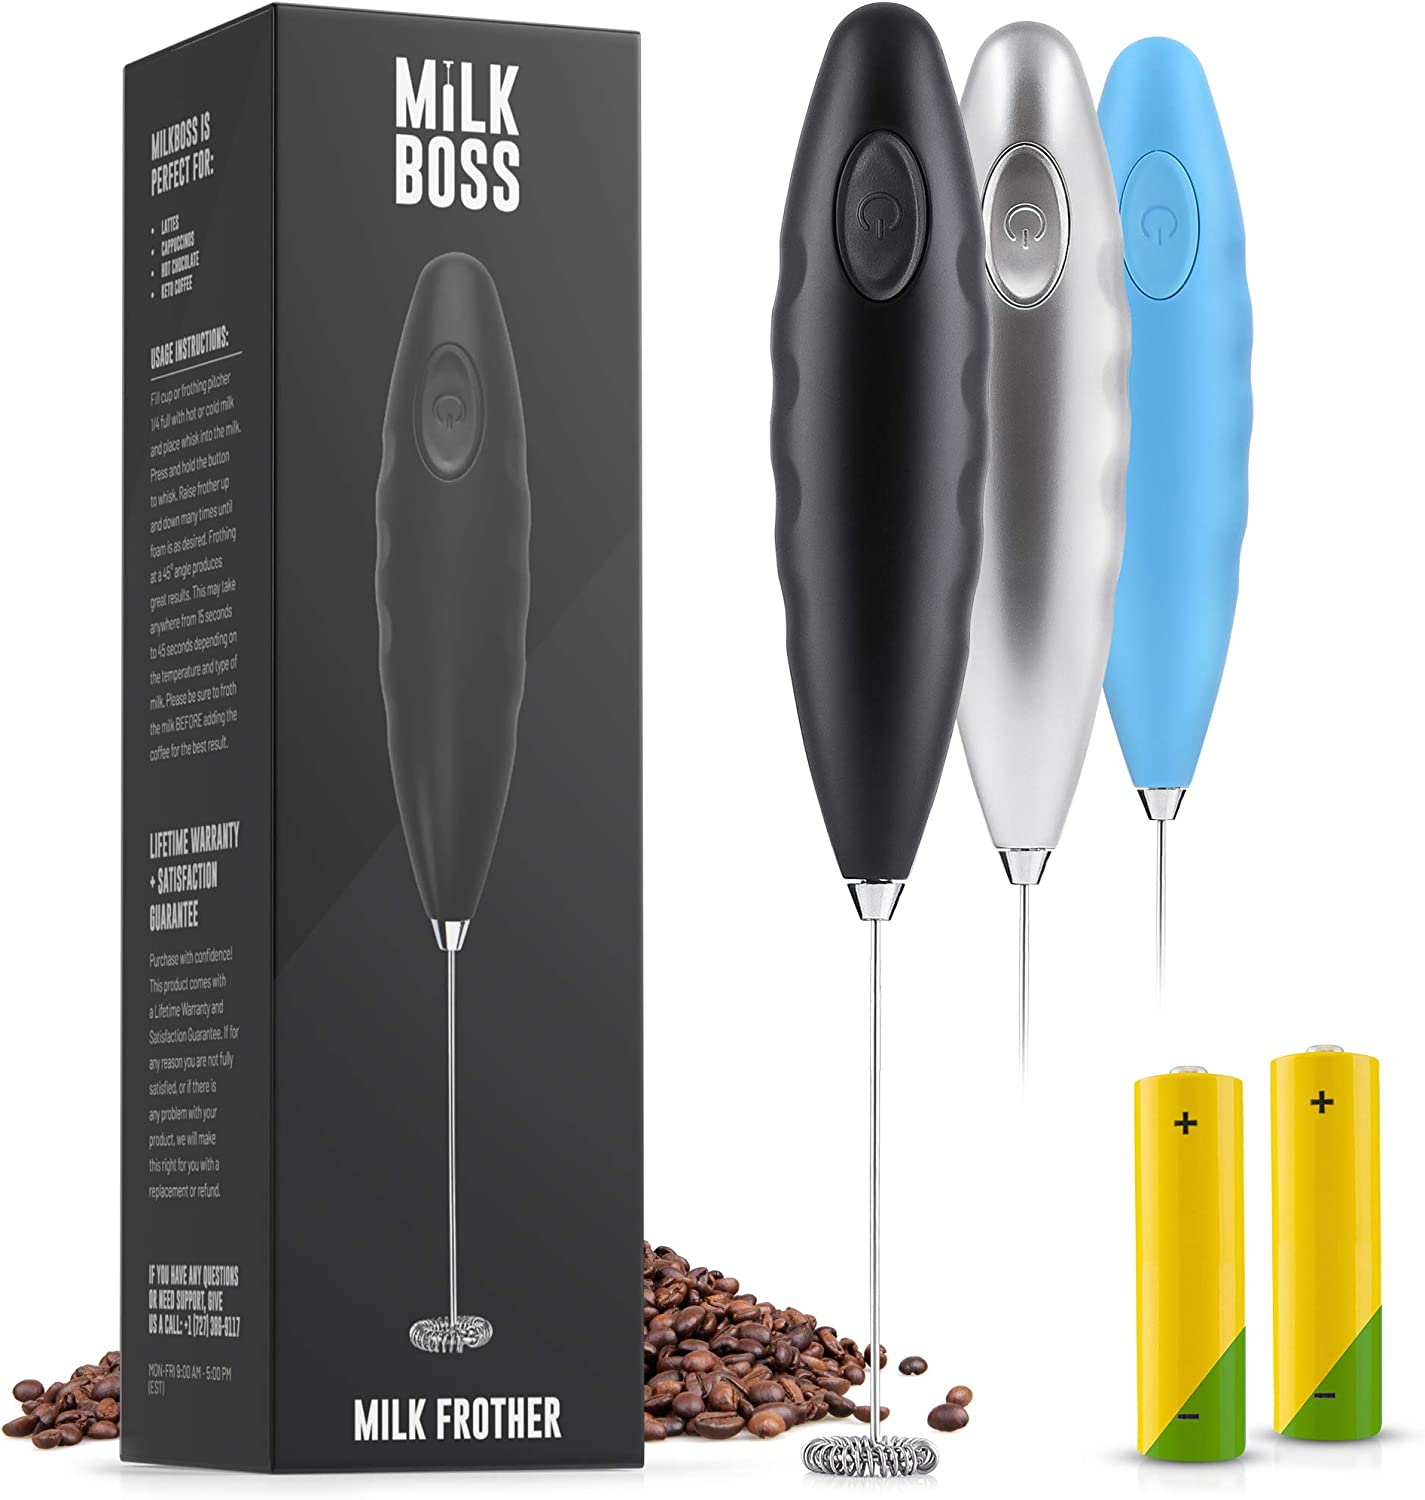 Milk Boss (Batteries Included) Double Grip Milk Frother Handheld - Coffee Frother Electric Handheld Foam Maker - Frother For Coffee, Latte, Matcha & More - Electric Whisk (Stand Not Included) - Black